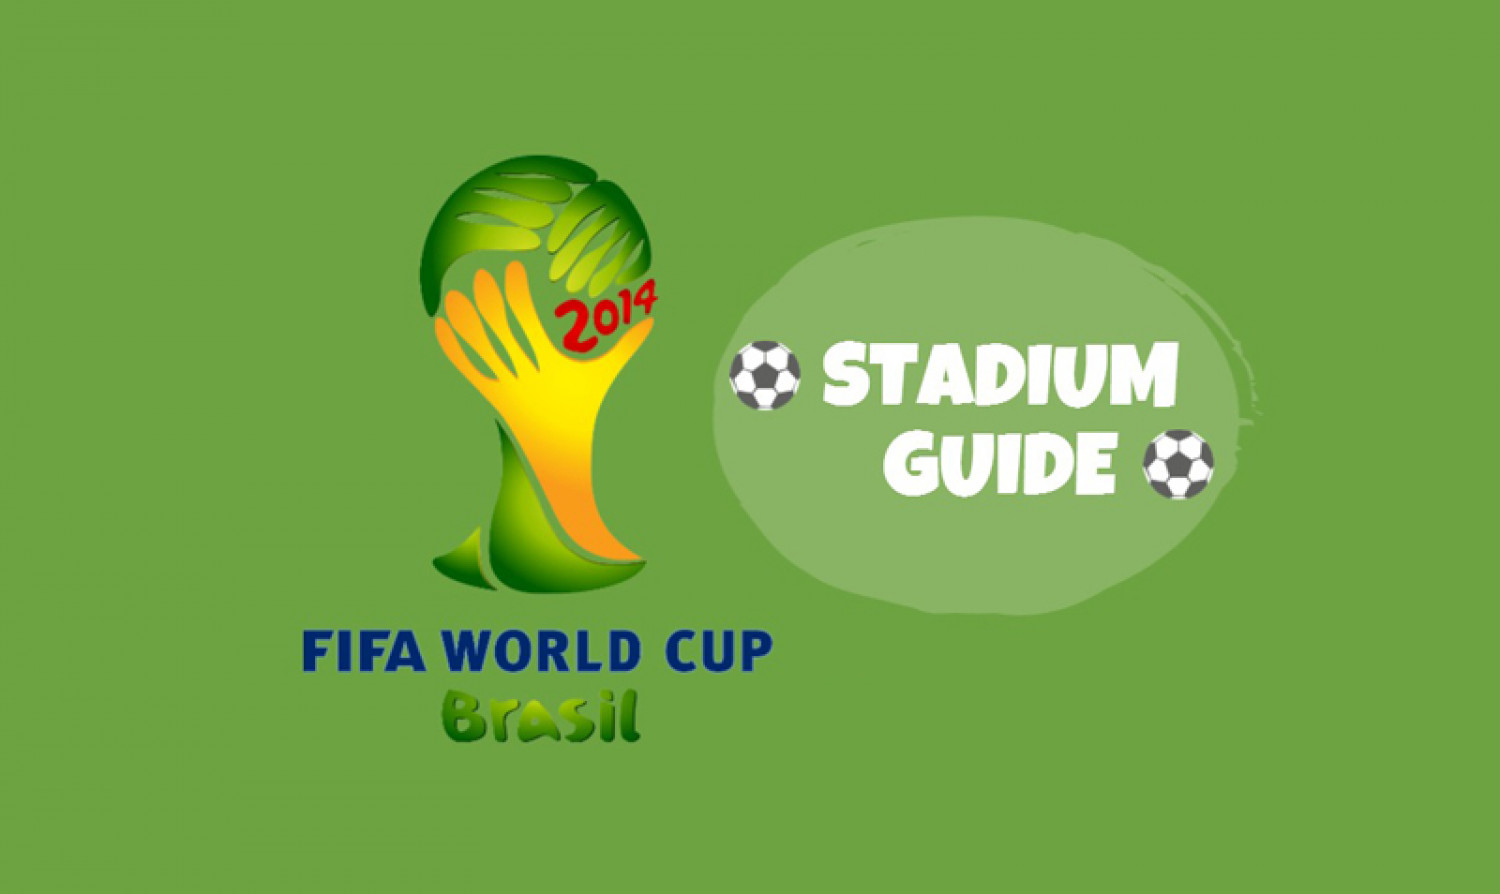 Brazil World Cup 2014 Stadiums Guide Infographic